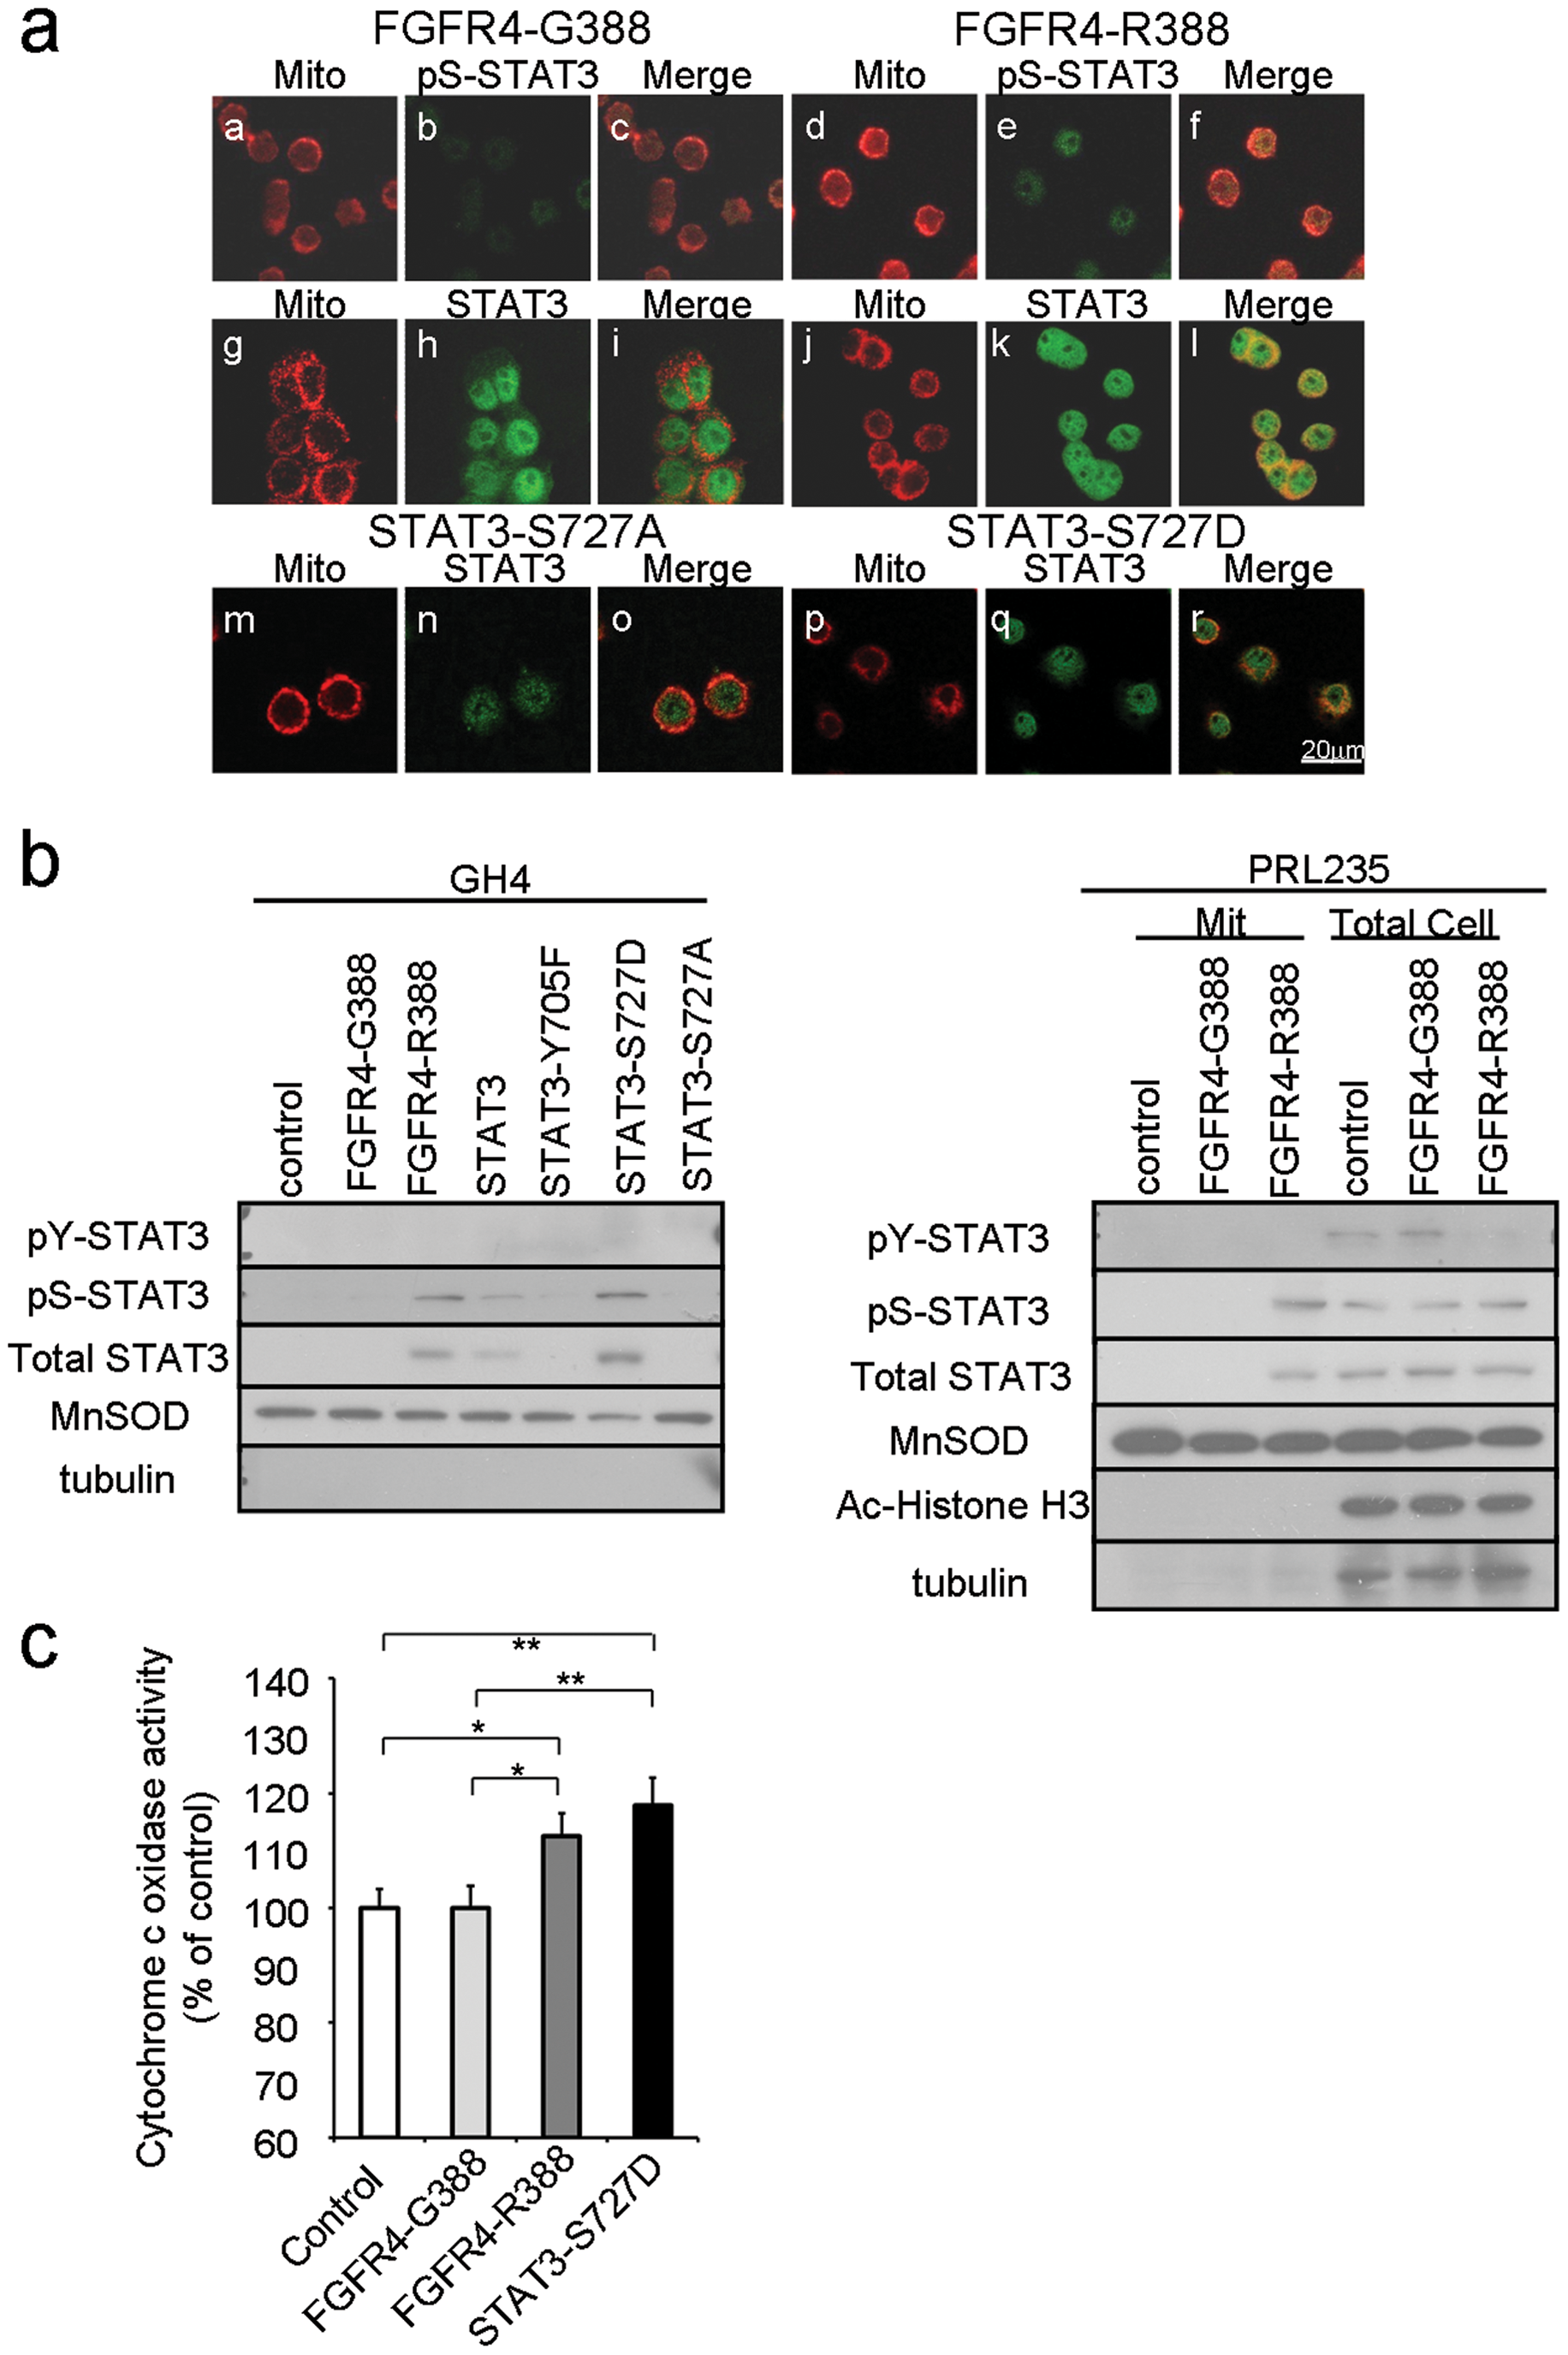 FGFR4-R388 relies on STAT3 serine phosphorylation to induce mitochondrial Cytochrome c activity and pituitary tumor cell growth.